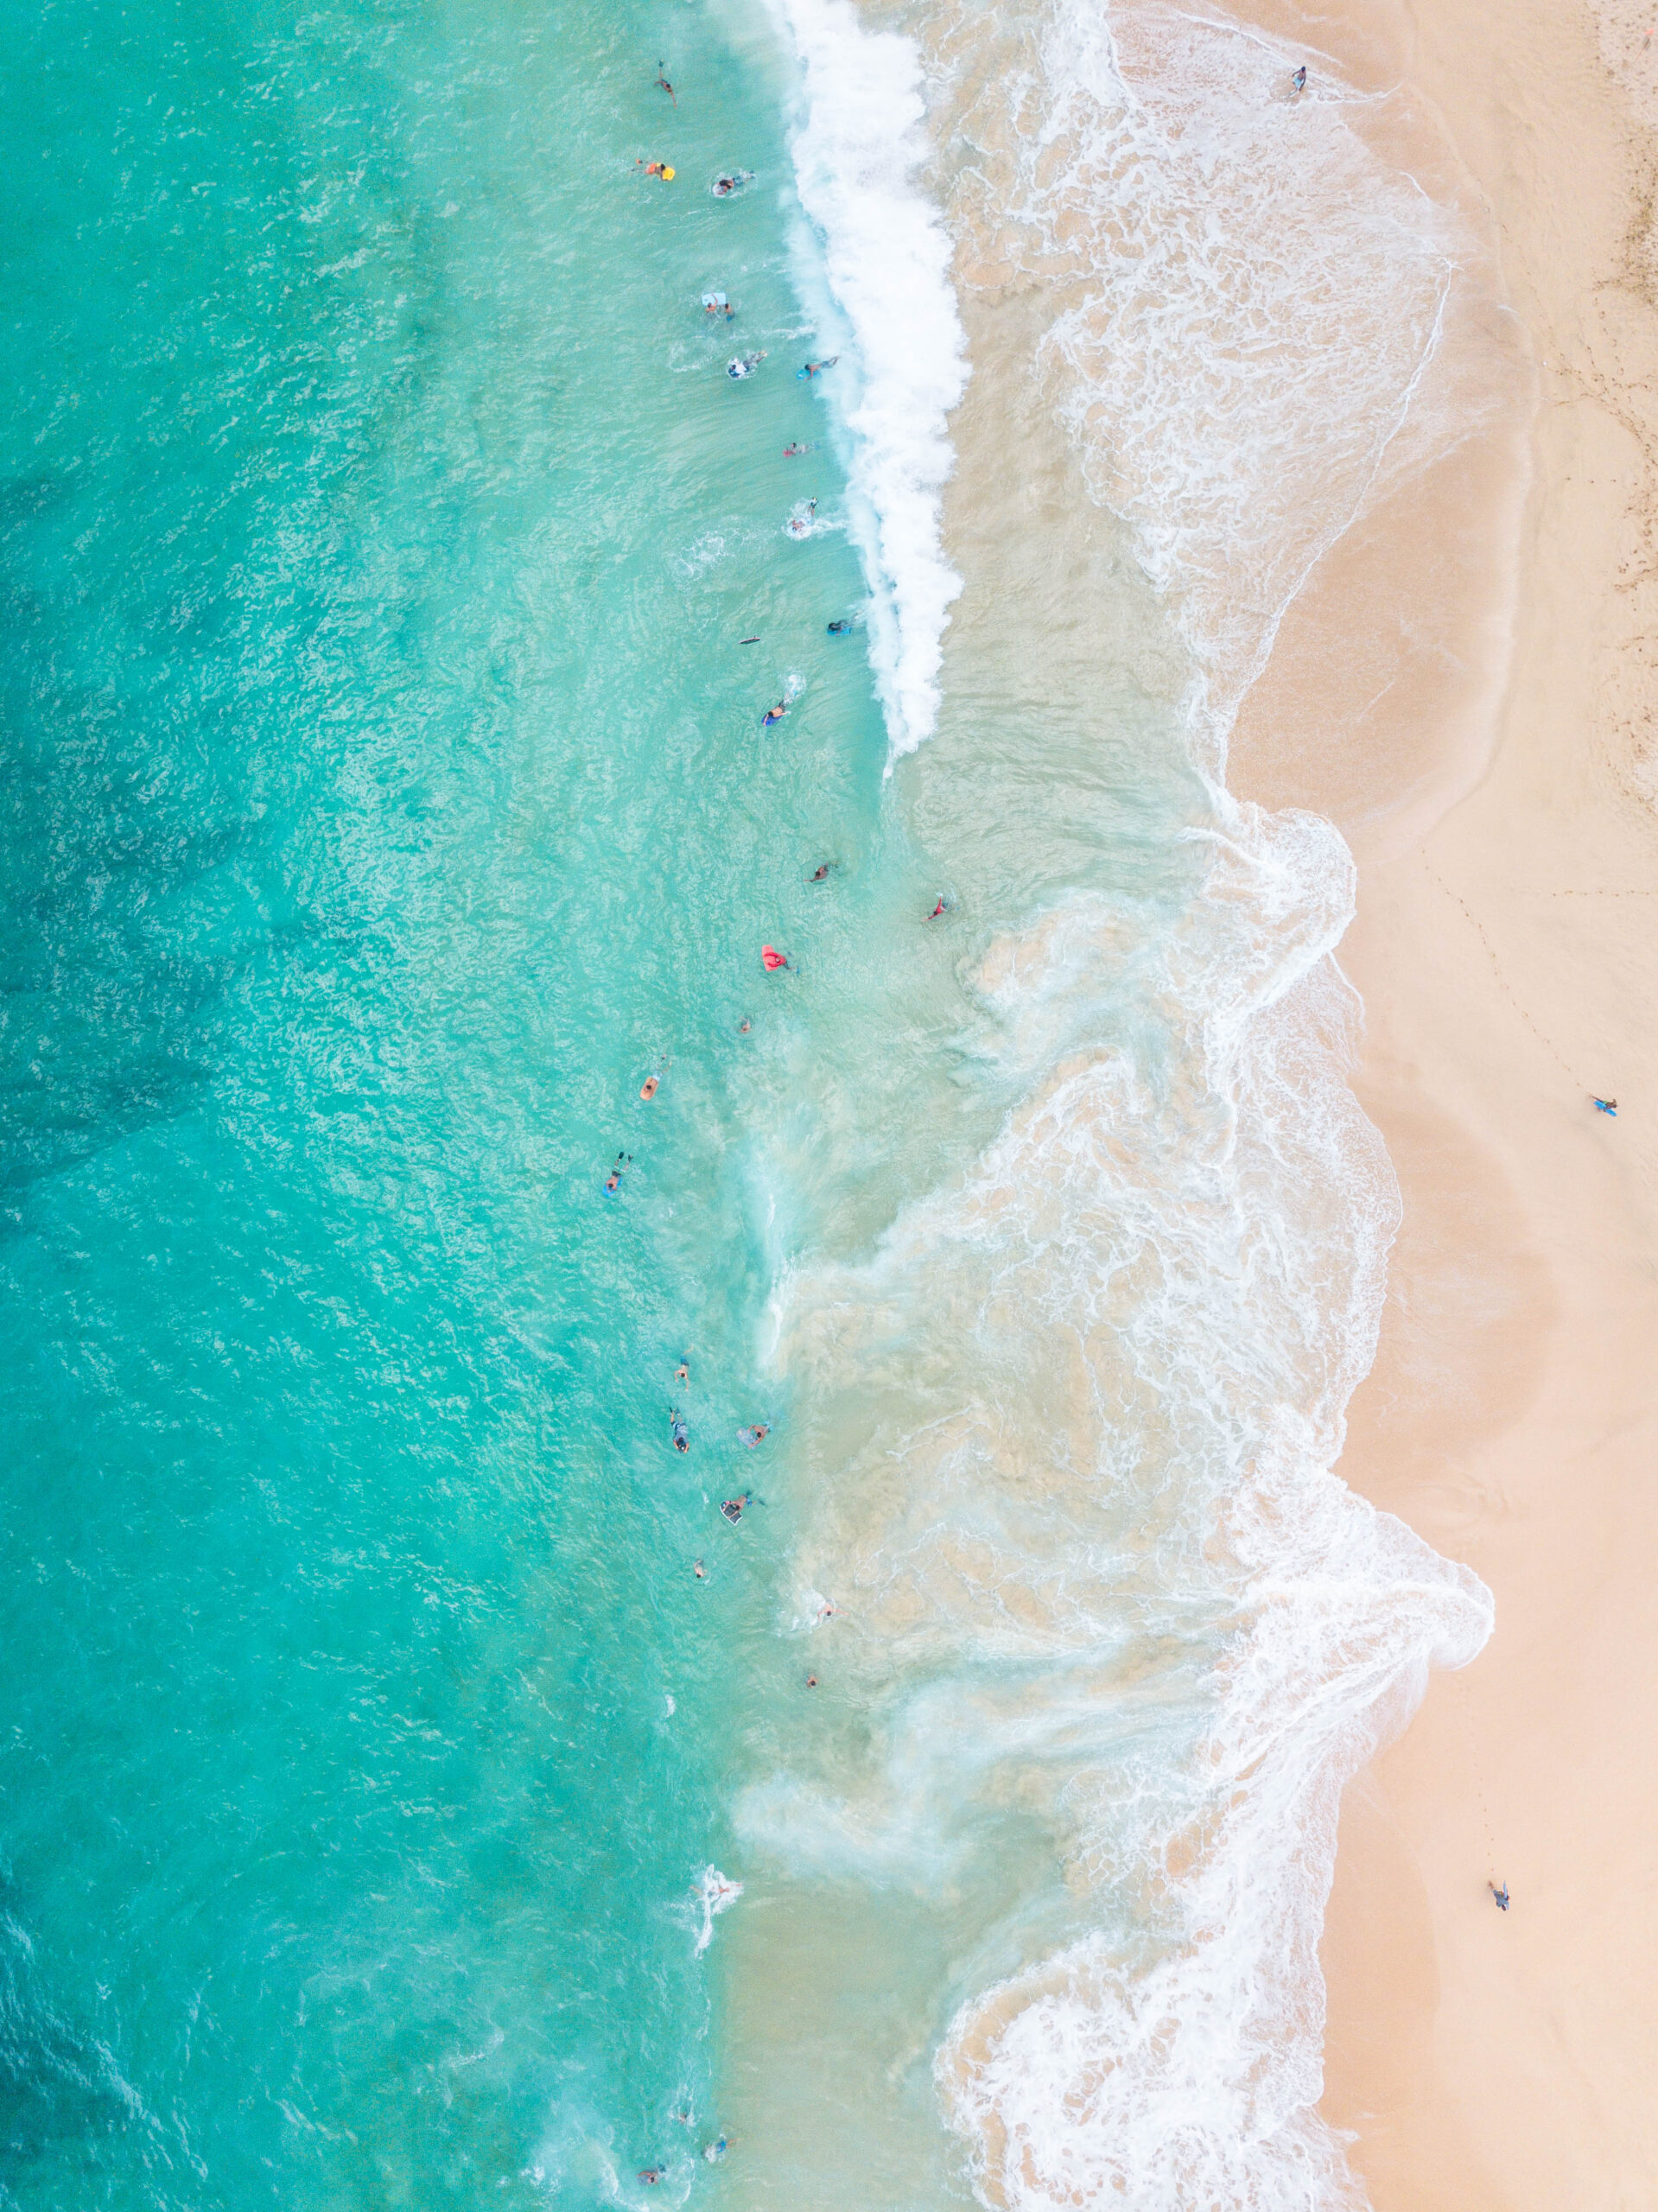 Aerial of Hawaii beach with turquoise water and sad